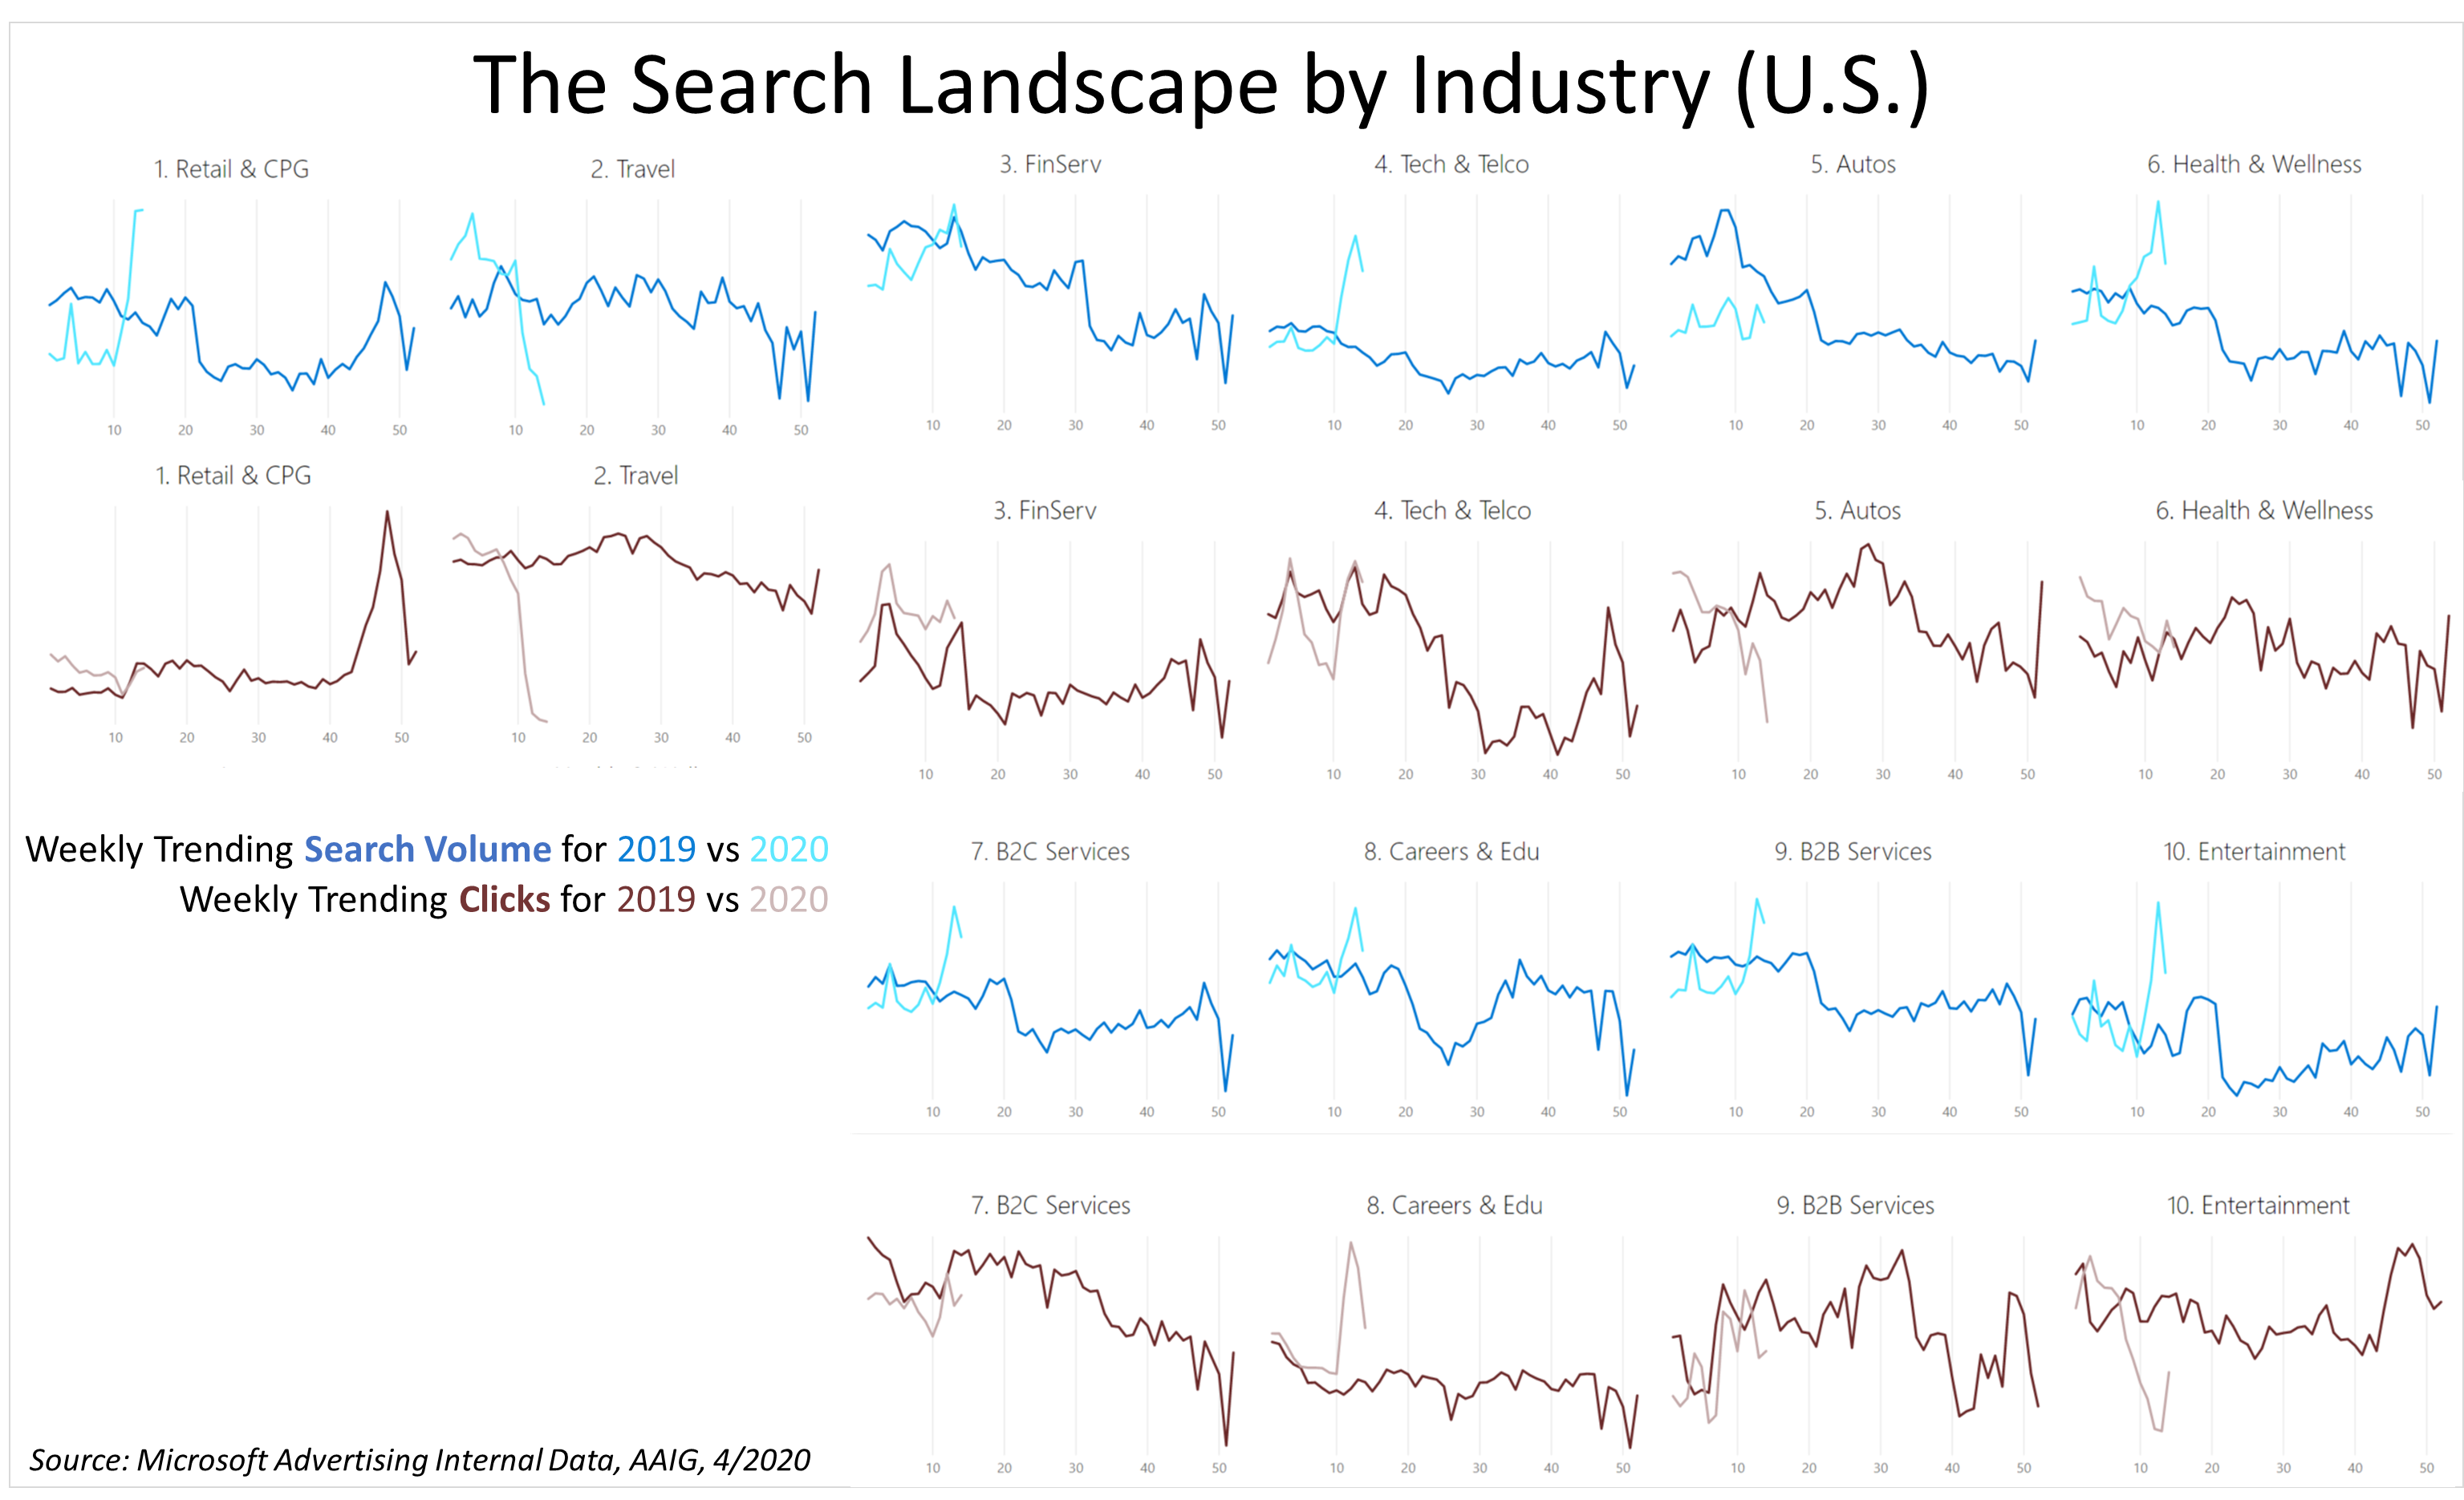 The US Search Industry Landscape outlining the year over year changes in search volume and clicks for the top 10 industries on Microsoft Advertising.